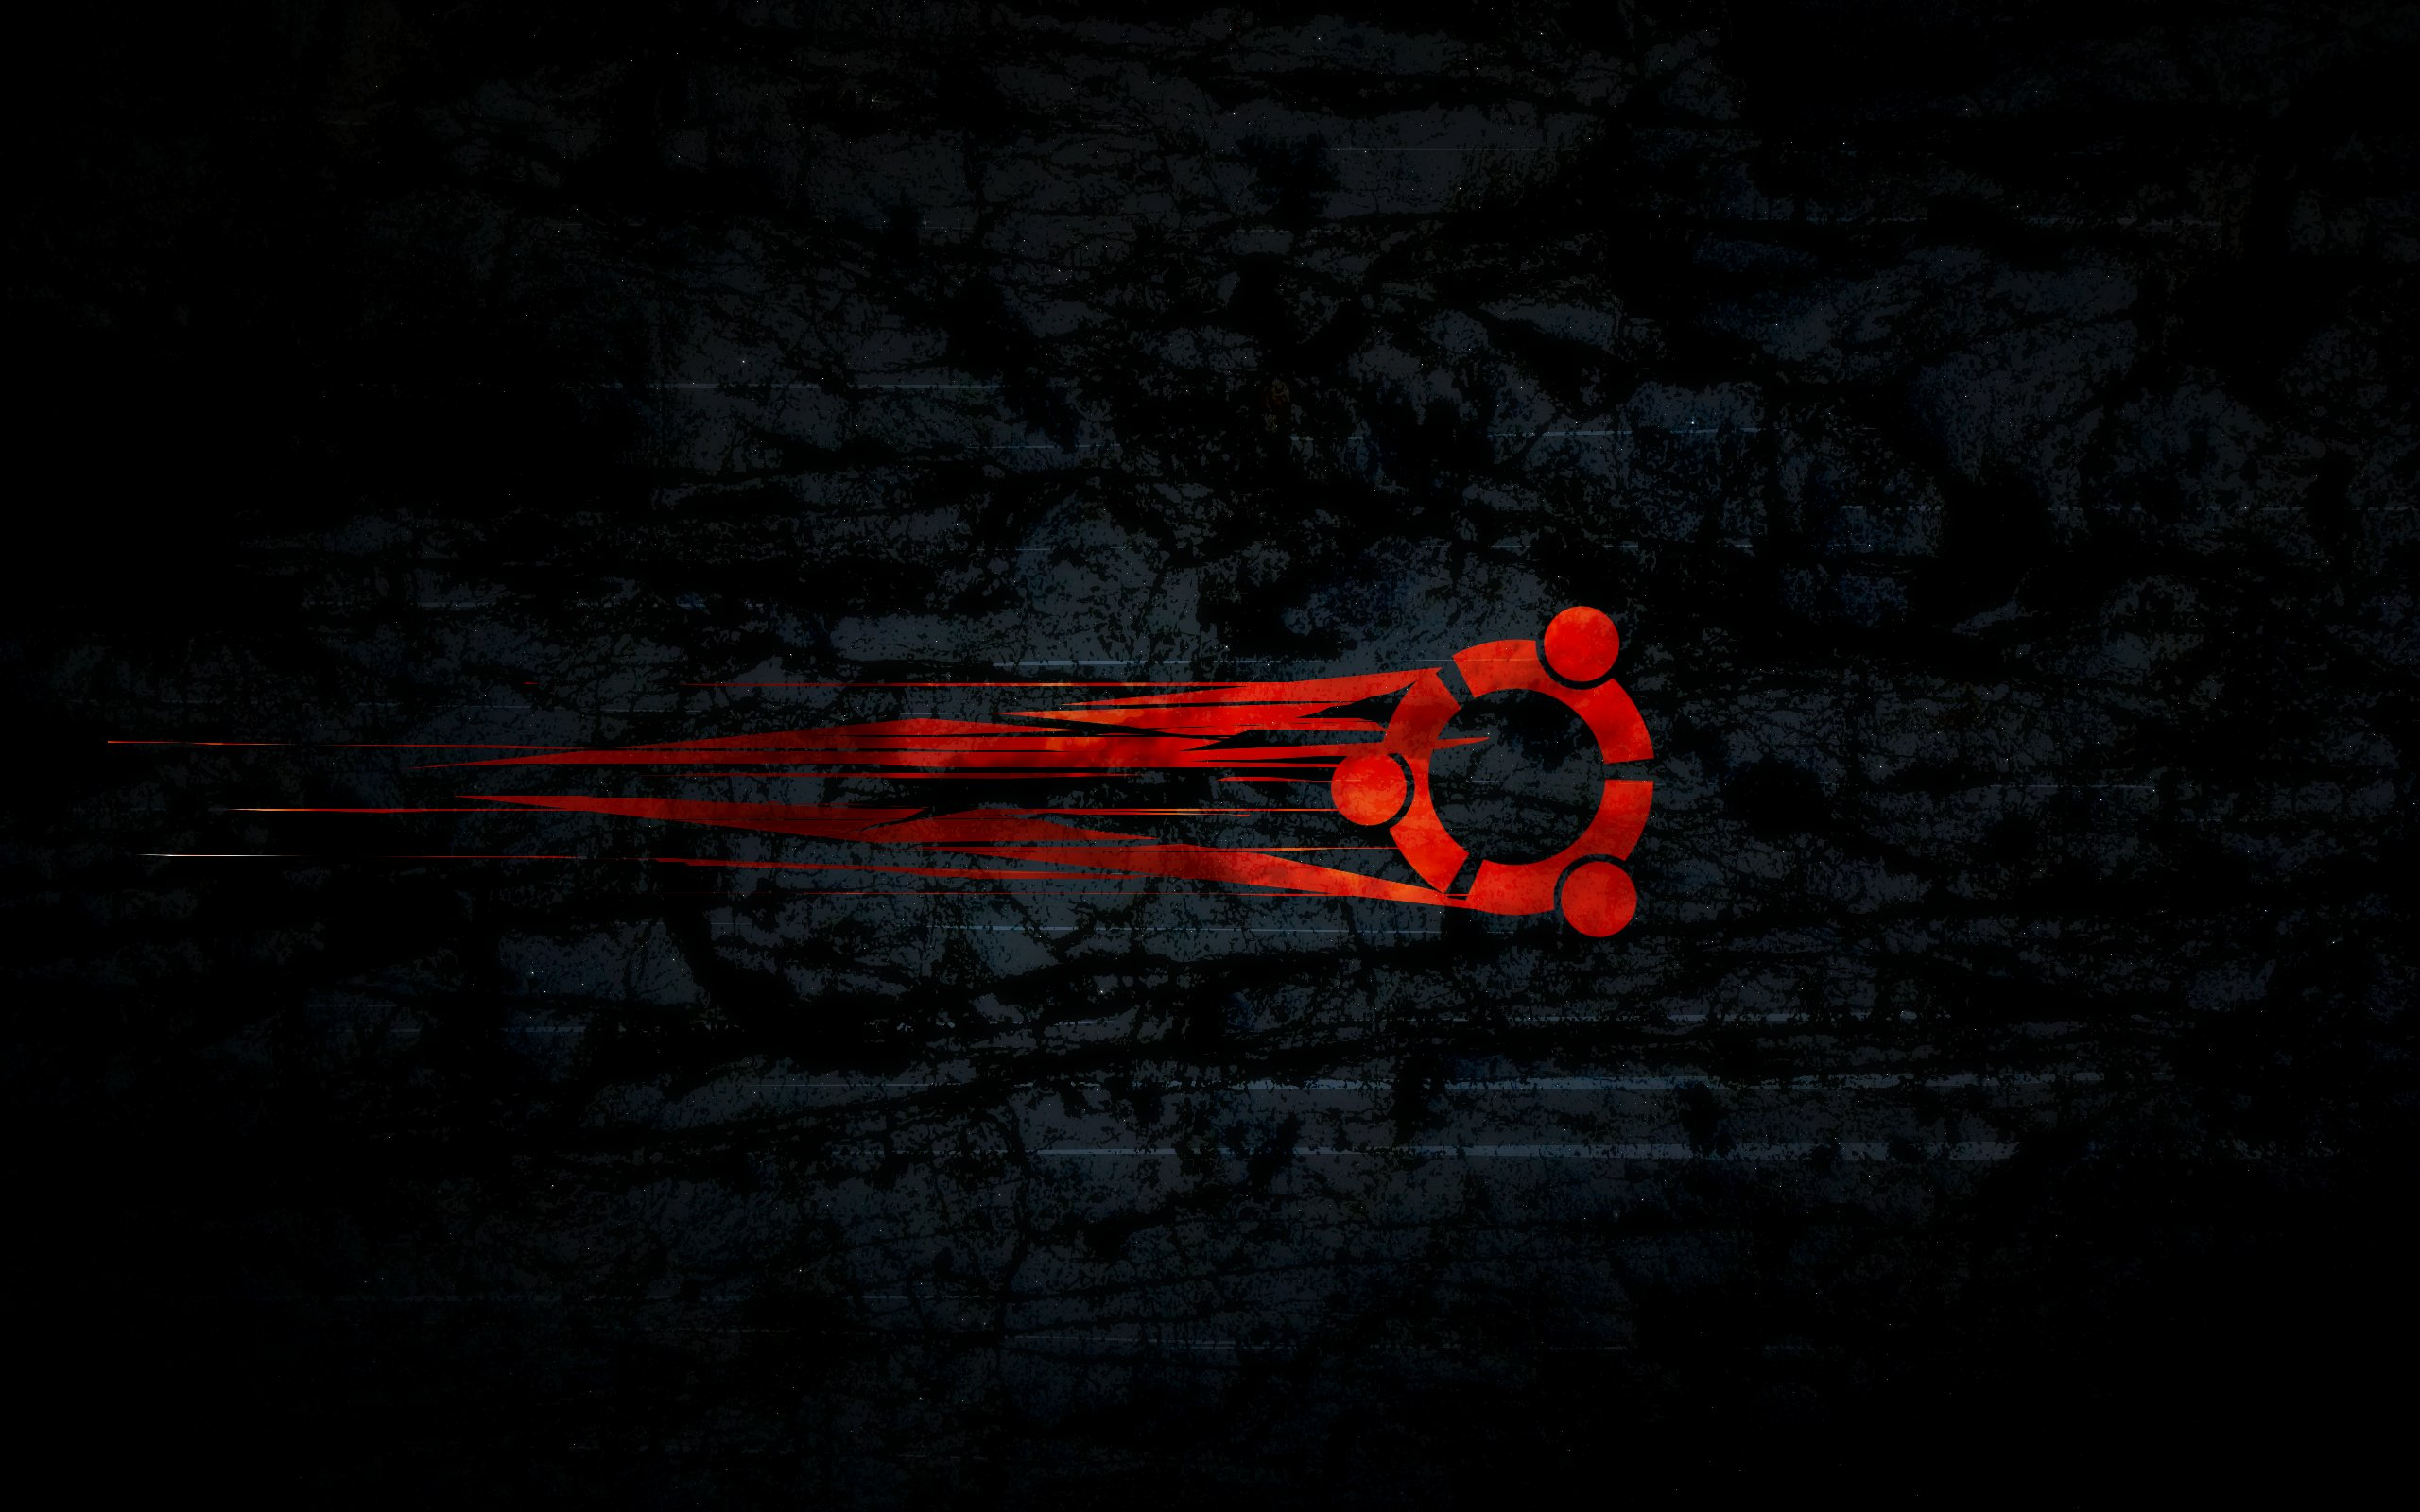 Black and Red Hd Wallpaper HD Wallpapers 2560x1600